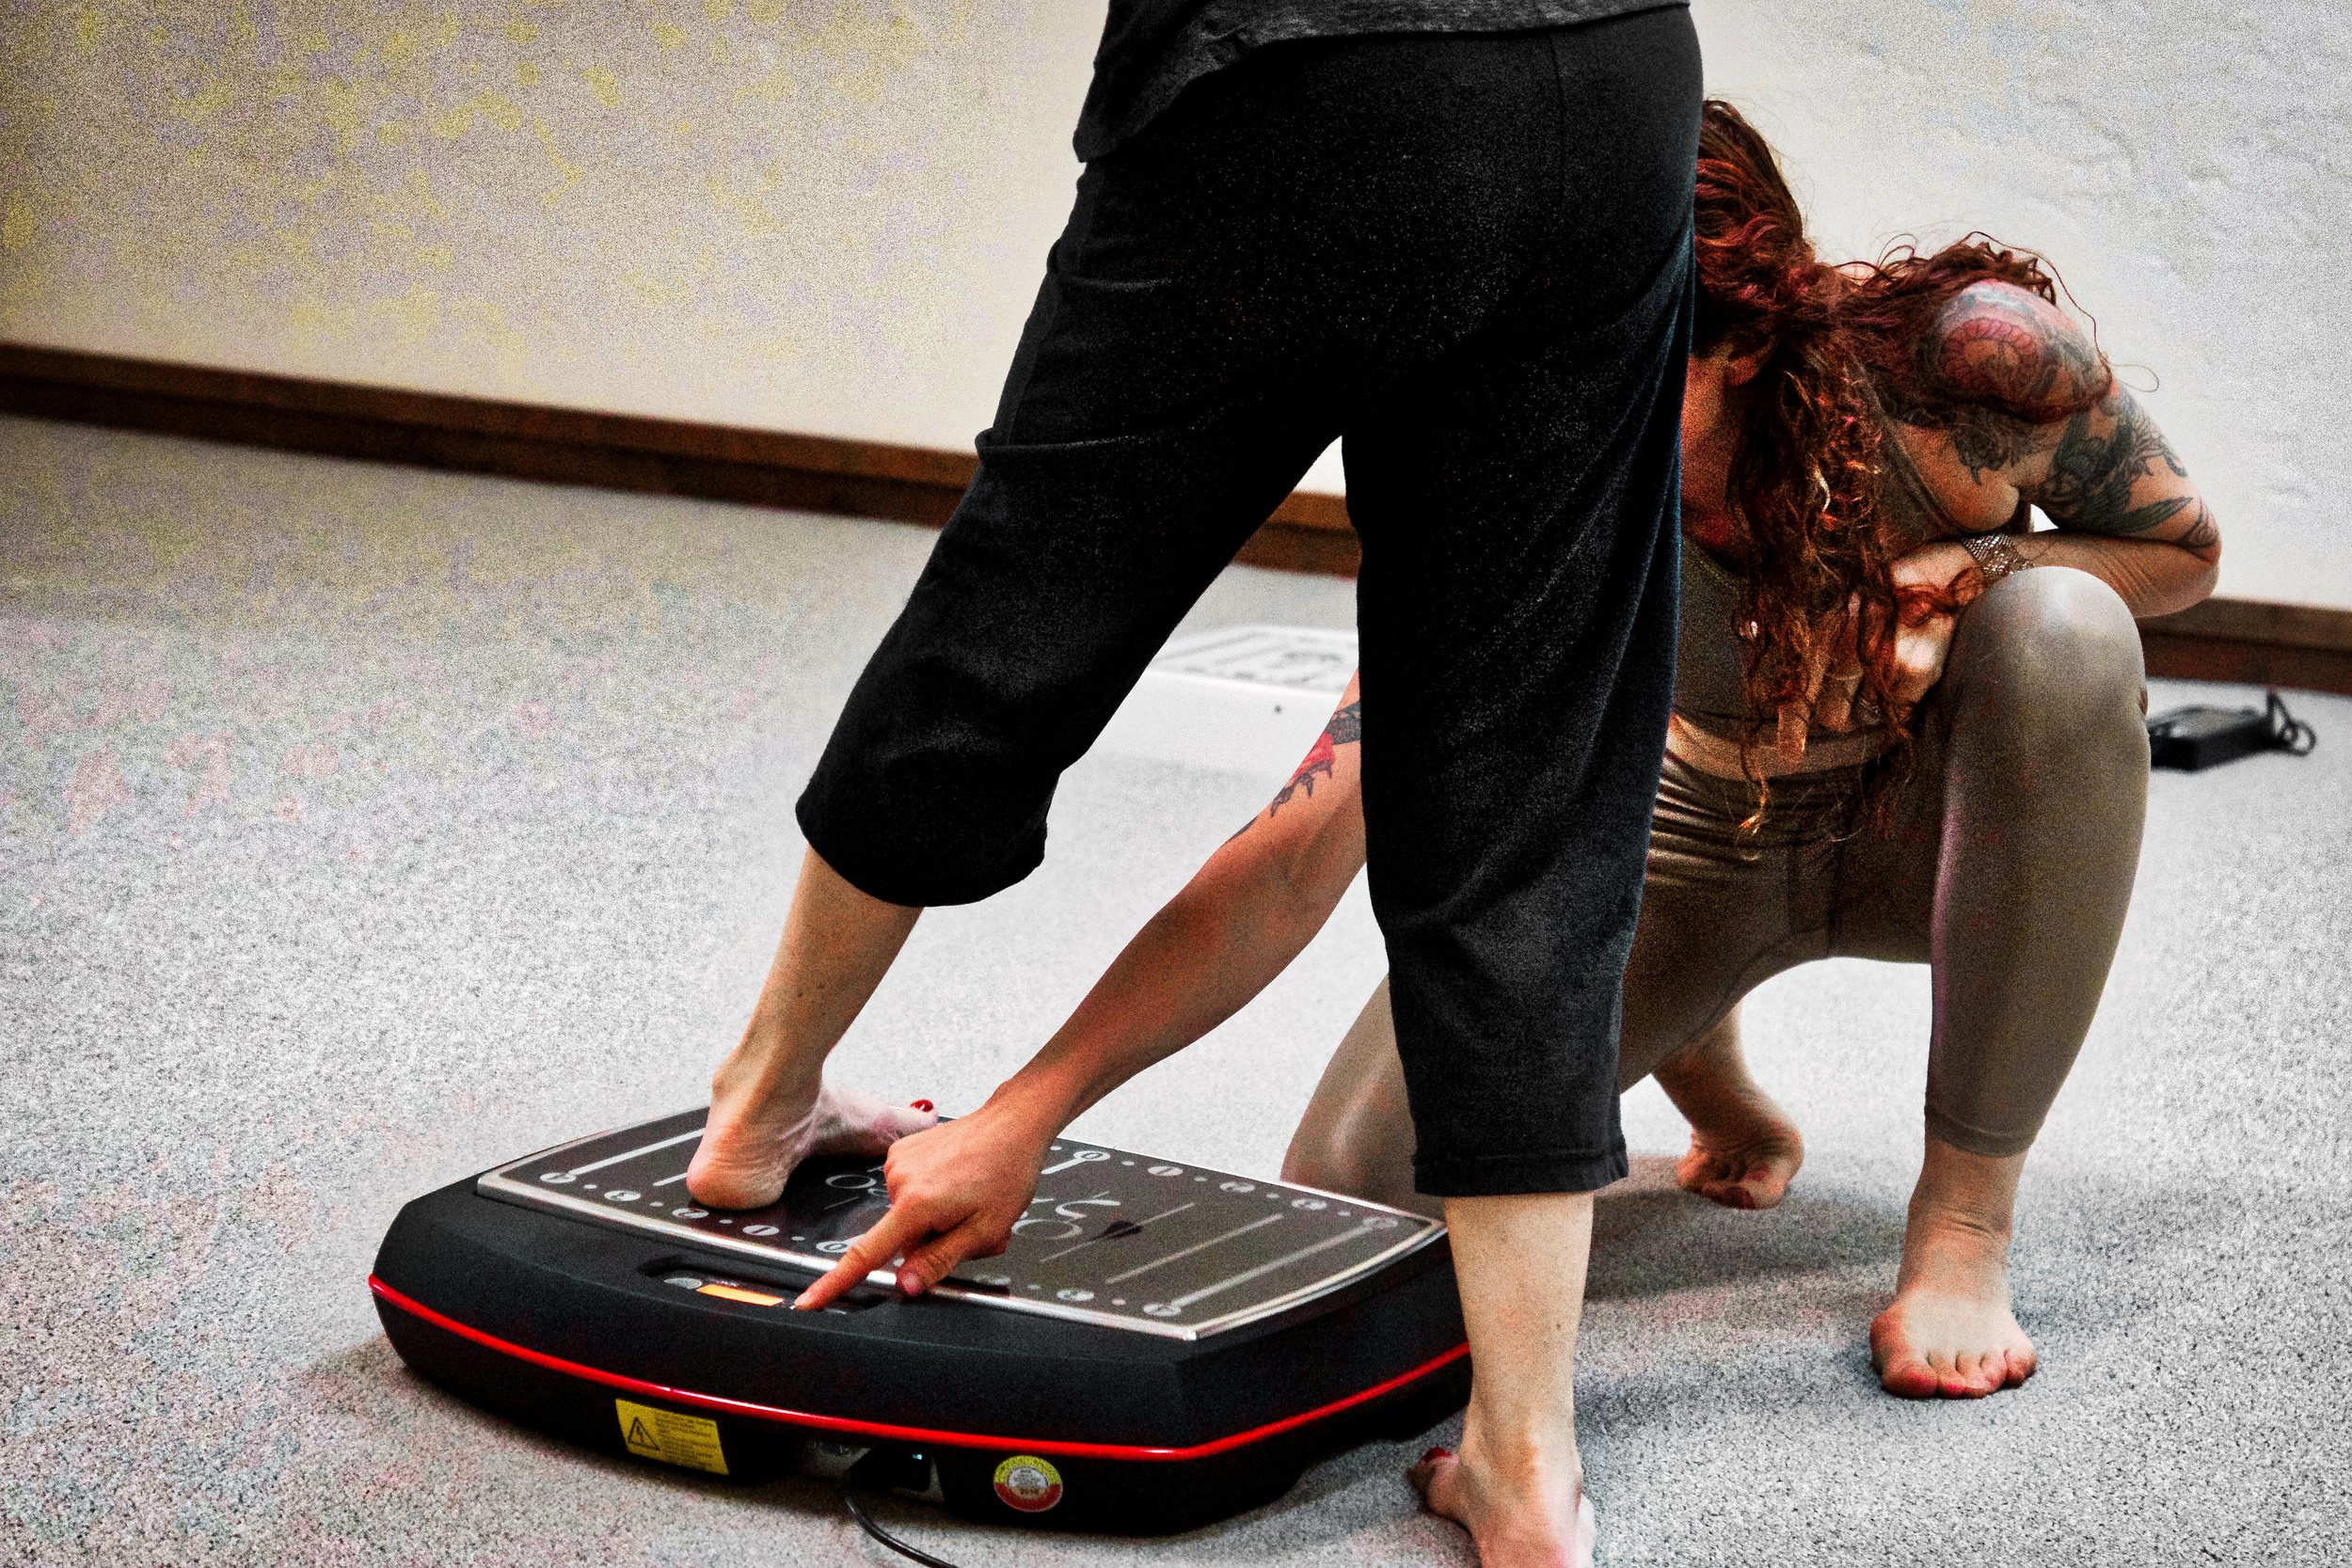 Tuesdays 6:15-7 PM through September  Cost: $30 drop in or $75 for the 3 class series  Strengthen and tone your body using whole body vibration Galileo plates combined with the support of the yoga trapeze and resistance bands. This 45 minute group class is designed for beginner students.  Your space is reserved for all 3 classes upon receipt of $75, or  contact Domini  to inquire about an individual drop in.  Payment can be made through Venmo to dominianne@gmail.com or by cash/check.